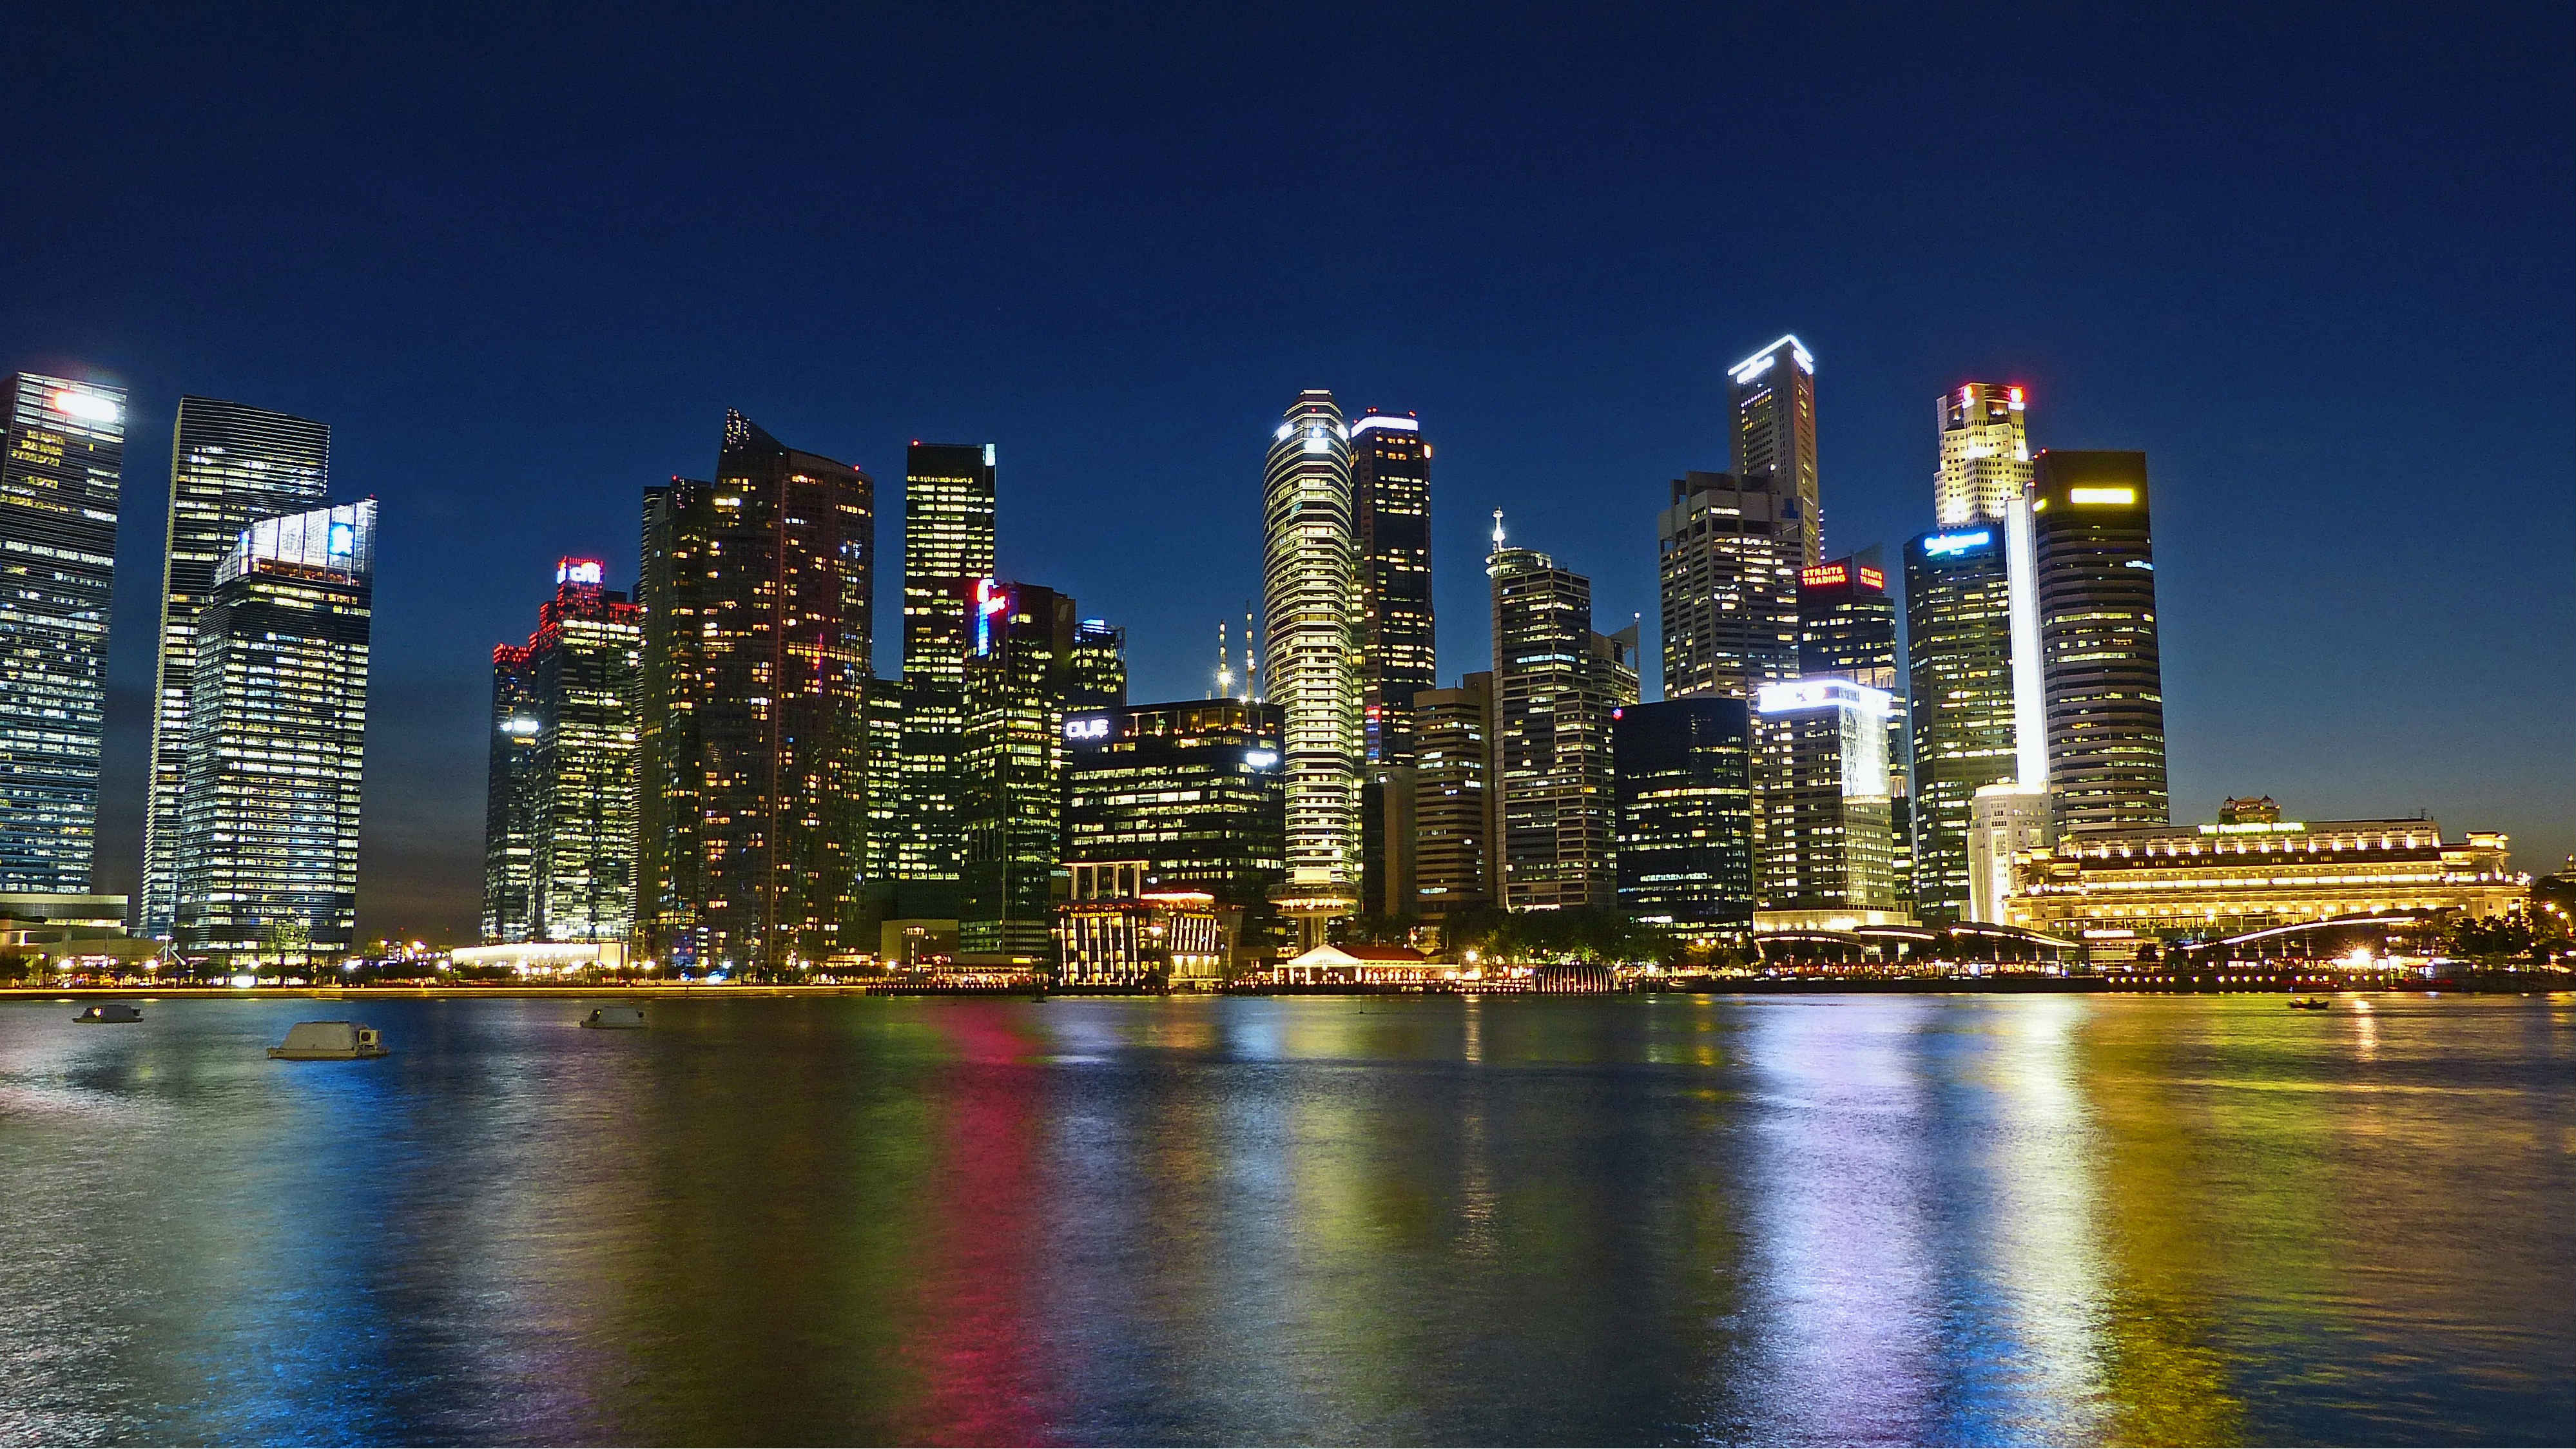 Singapore city skyline skyscrappers nightview office buildings